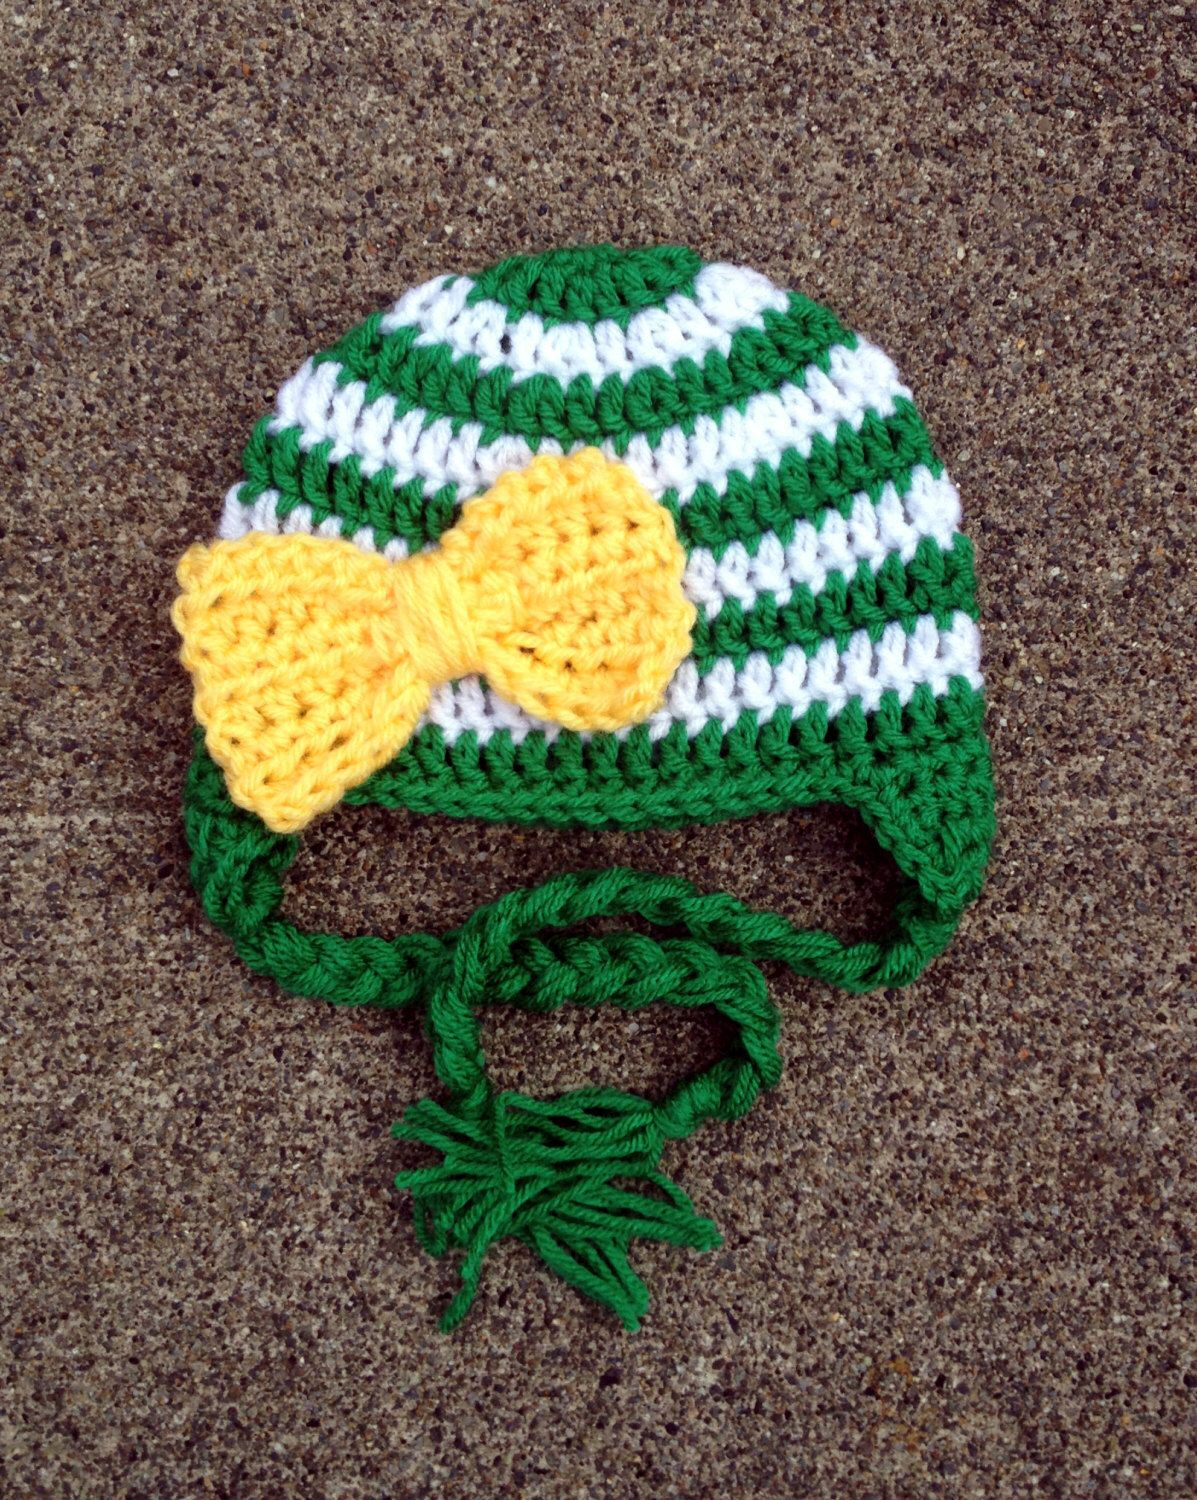 Oregon Ducks Inspired Stripe Big Bow Beanie In Green Yellow And White Available In Newborn To 5 Year Size Made To Order Big Bows Crochet Yarn Yarn